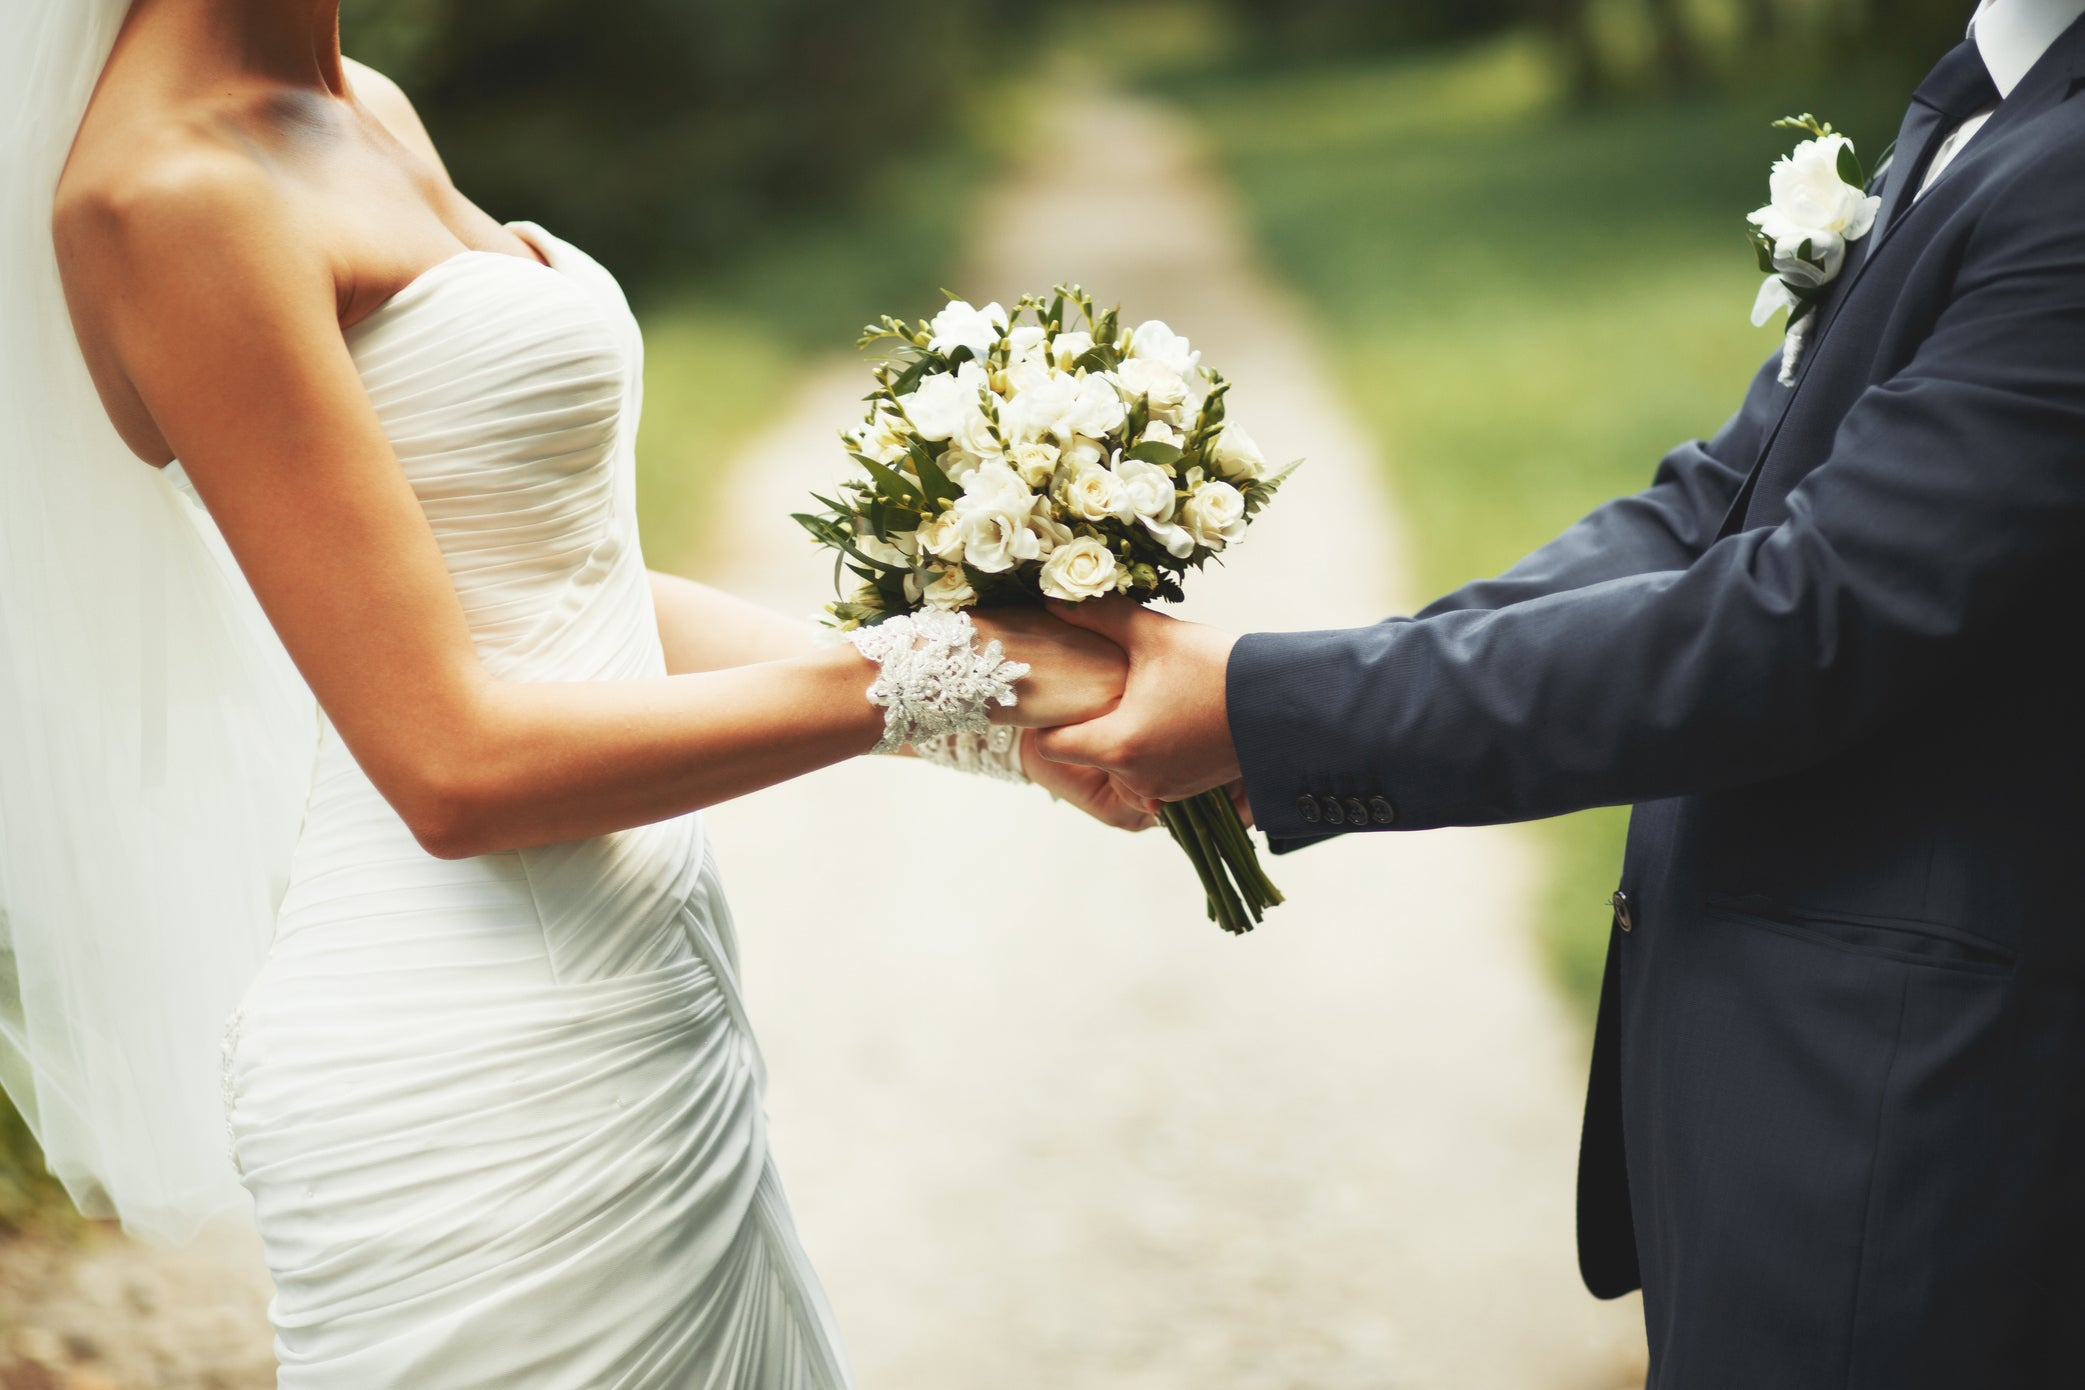 Average Uk Wedding Cost Reaches All Time High The Independent